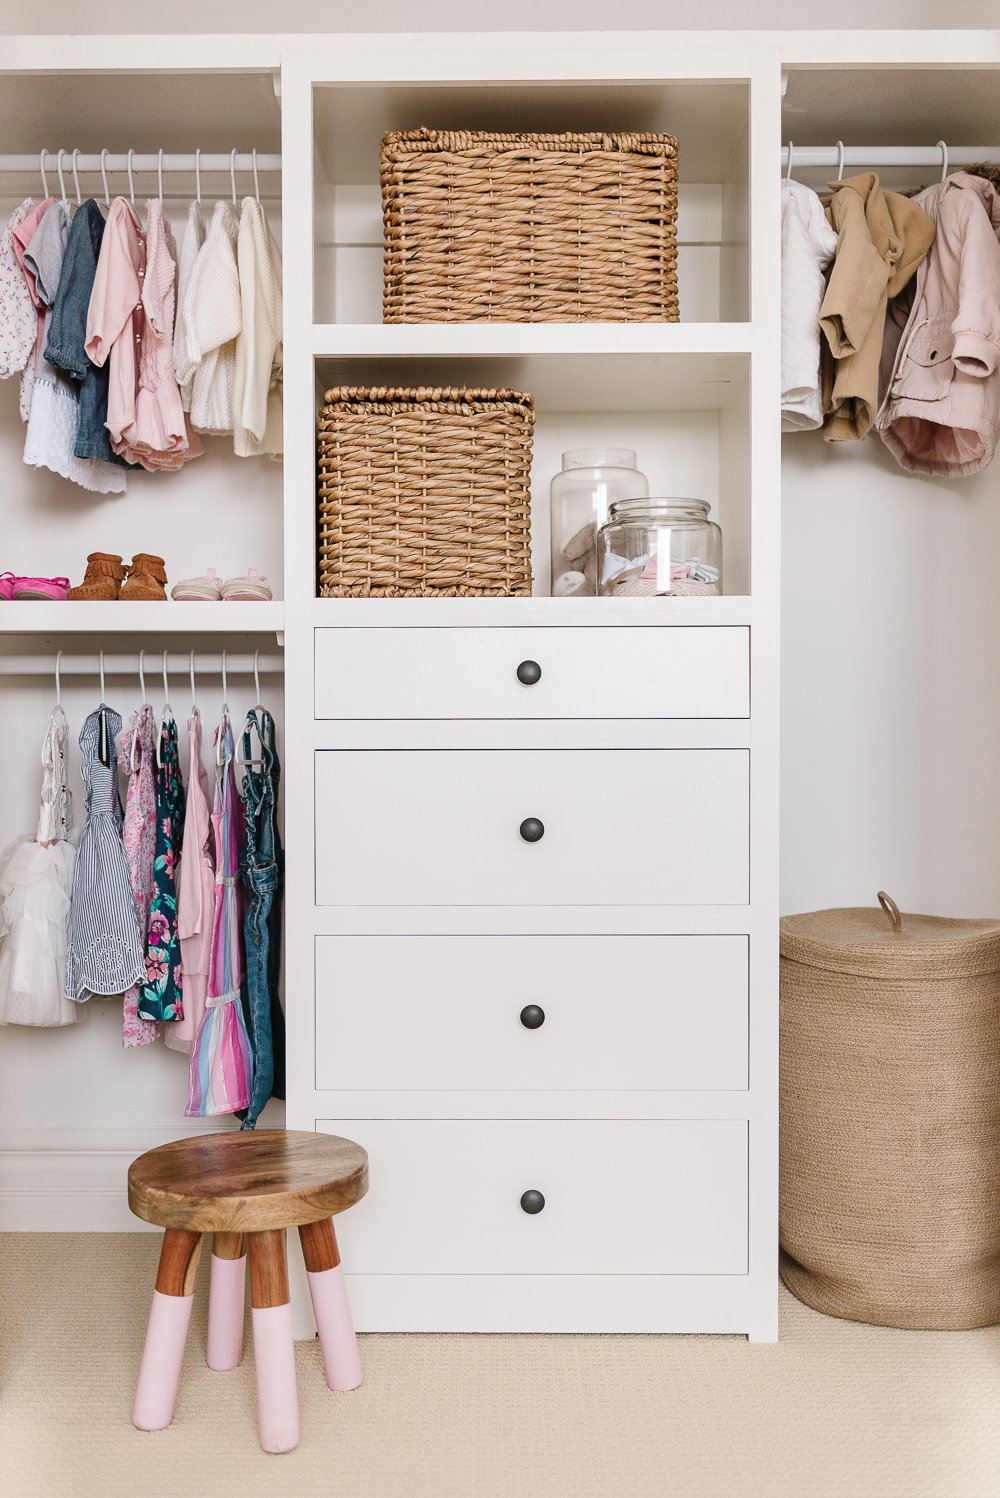 Closet organization system plans free with drawers and shelves